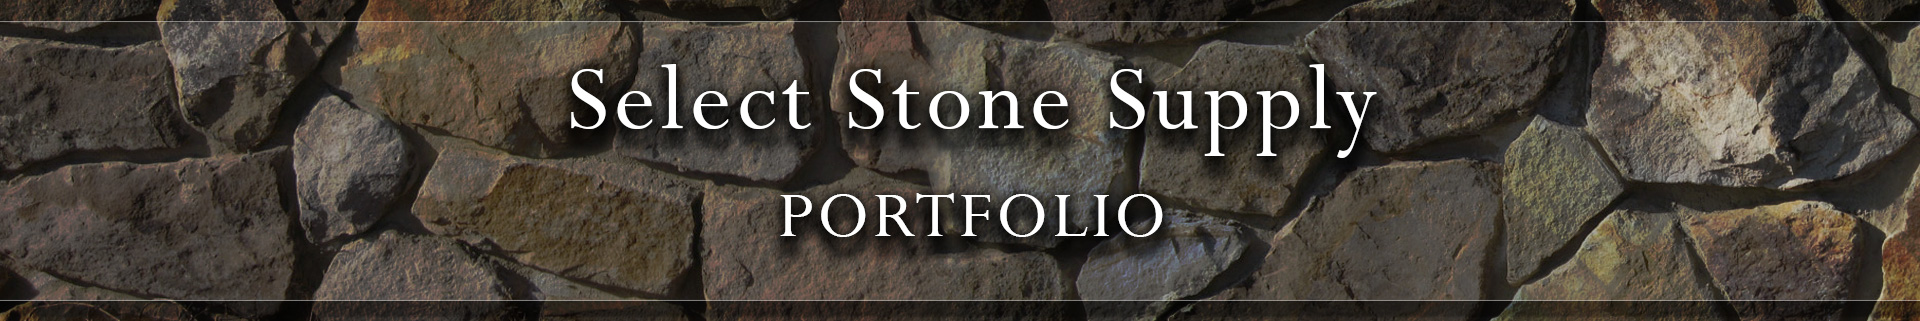 Select Stone Supply Portfolio